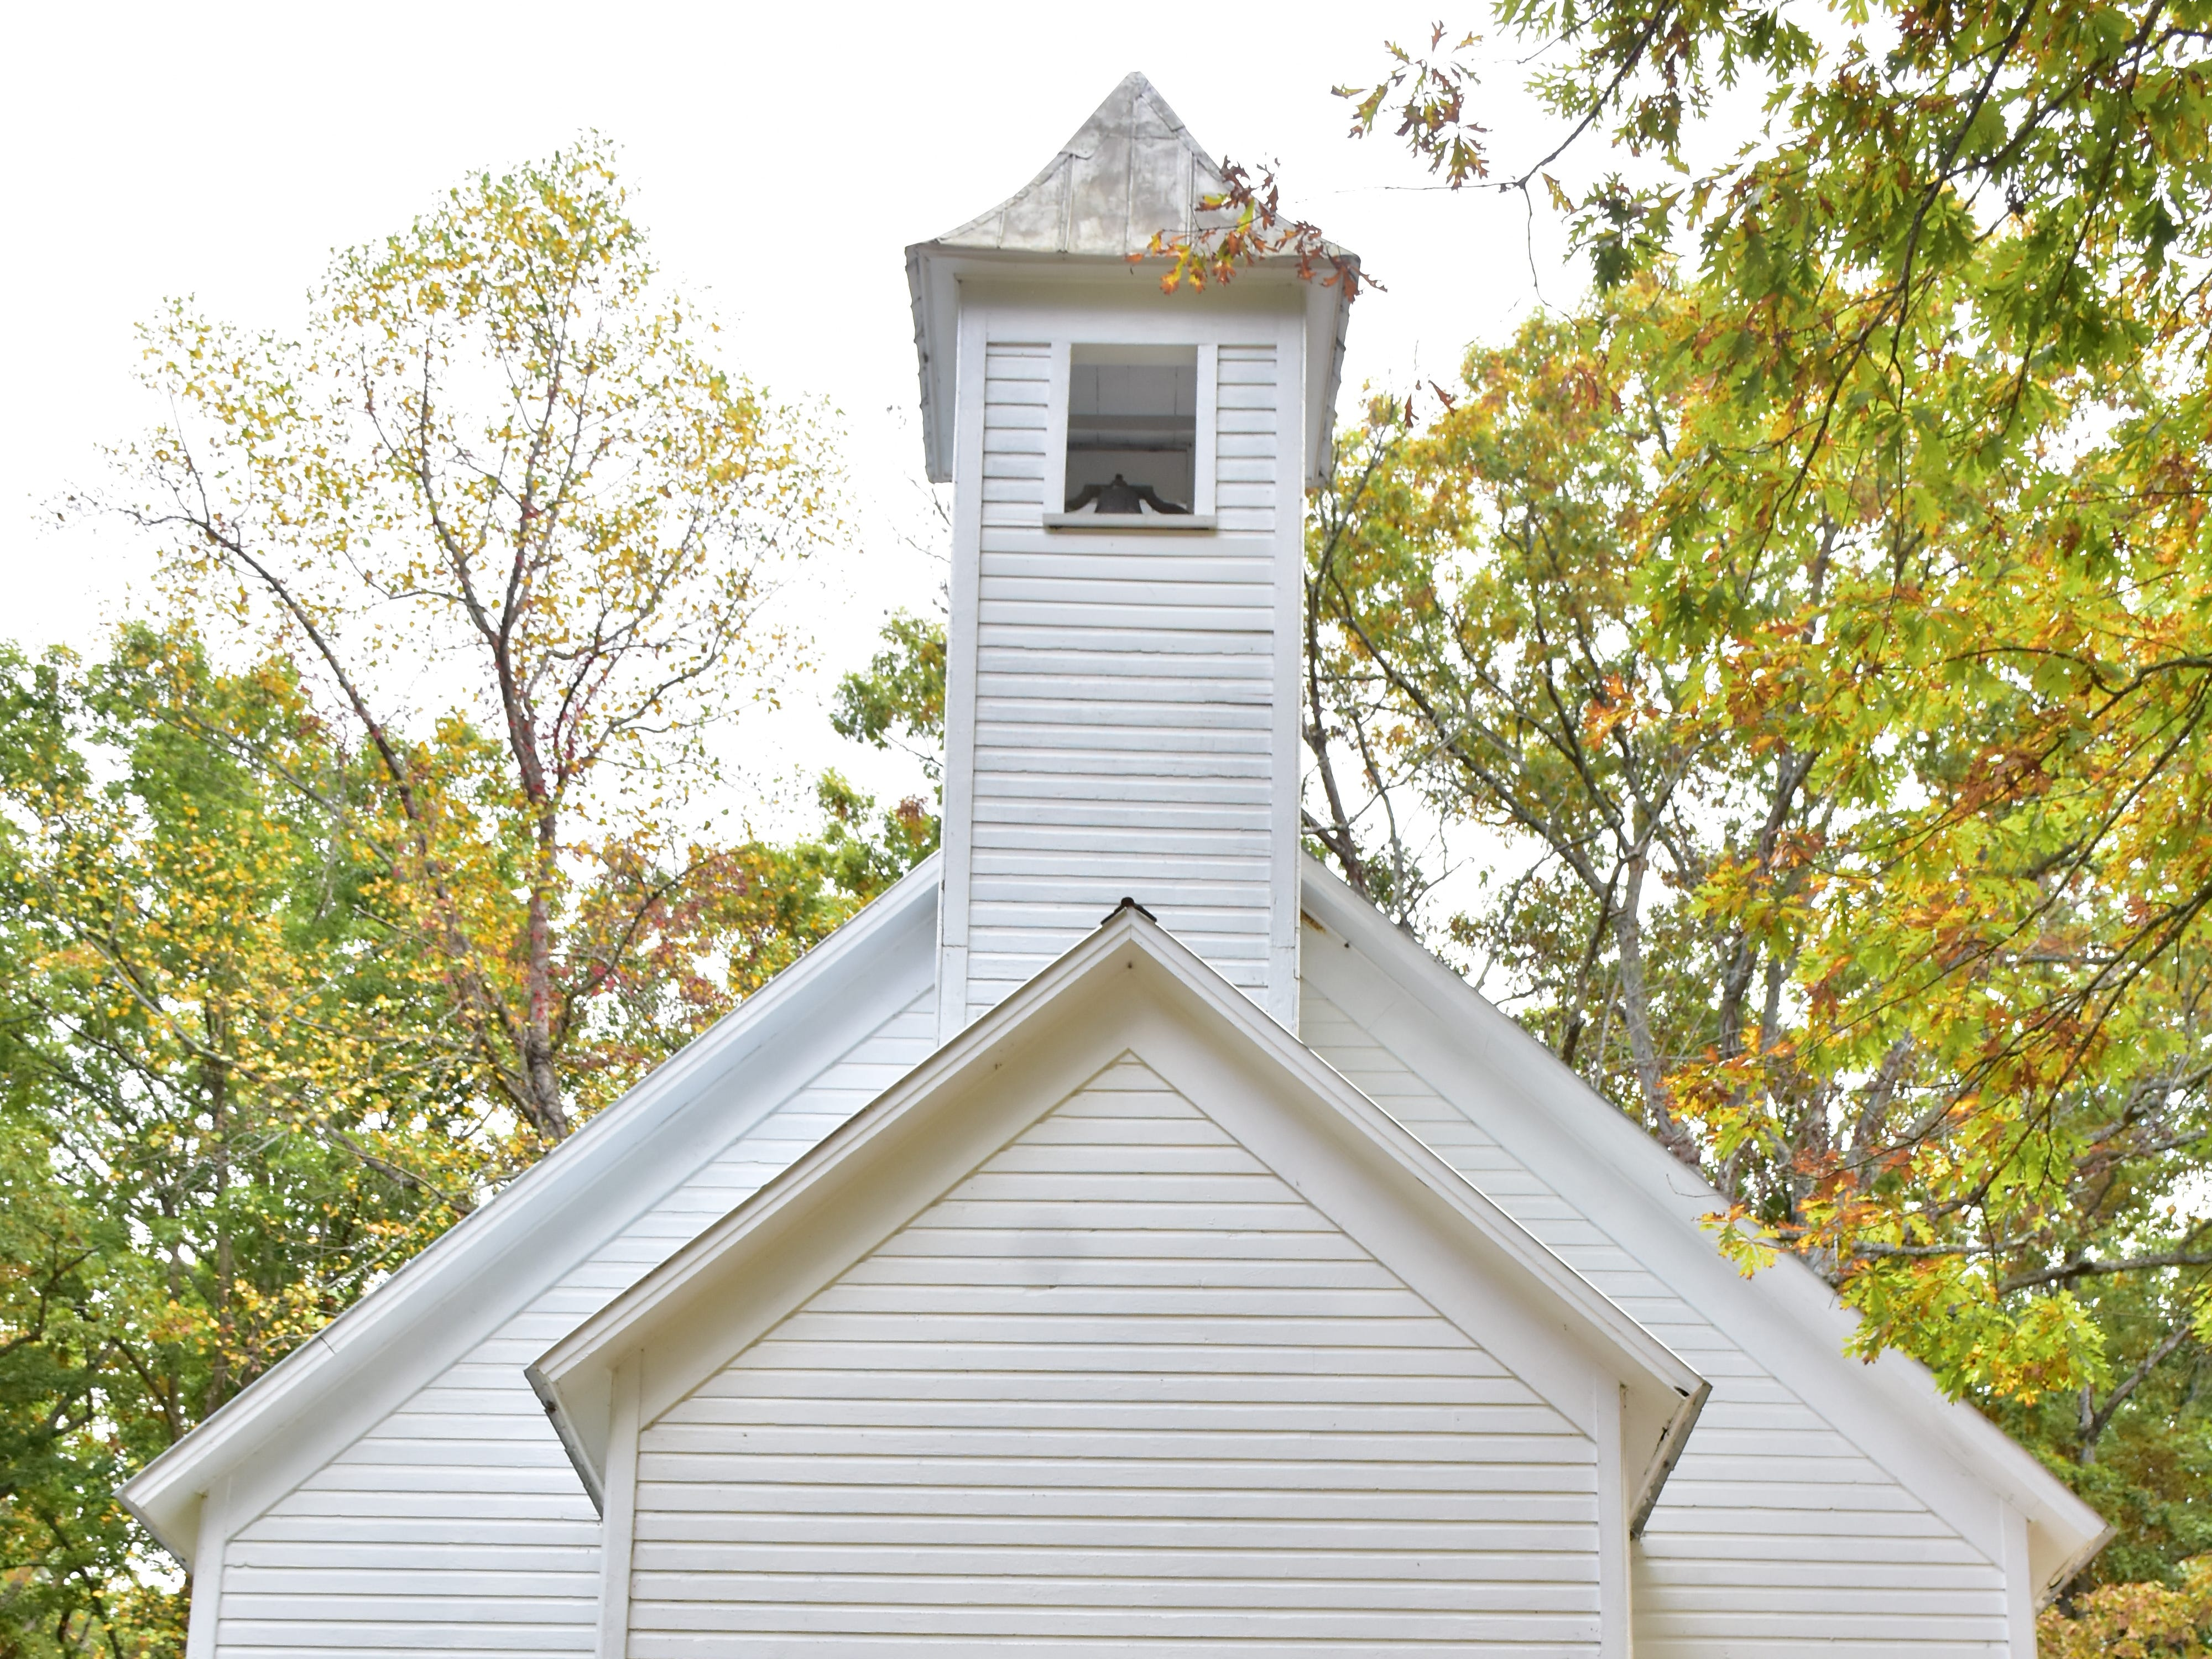 Missionary Baptist Church in Cades Cove, Great Smokey Mountains.